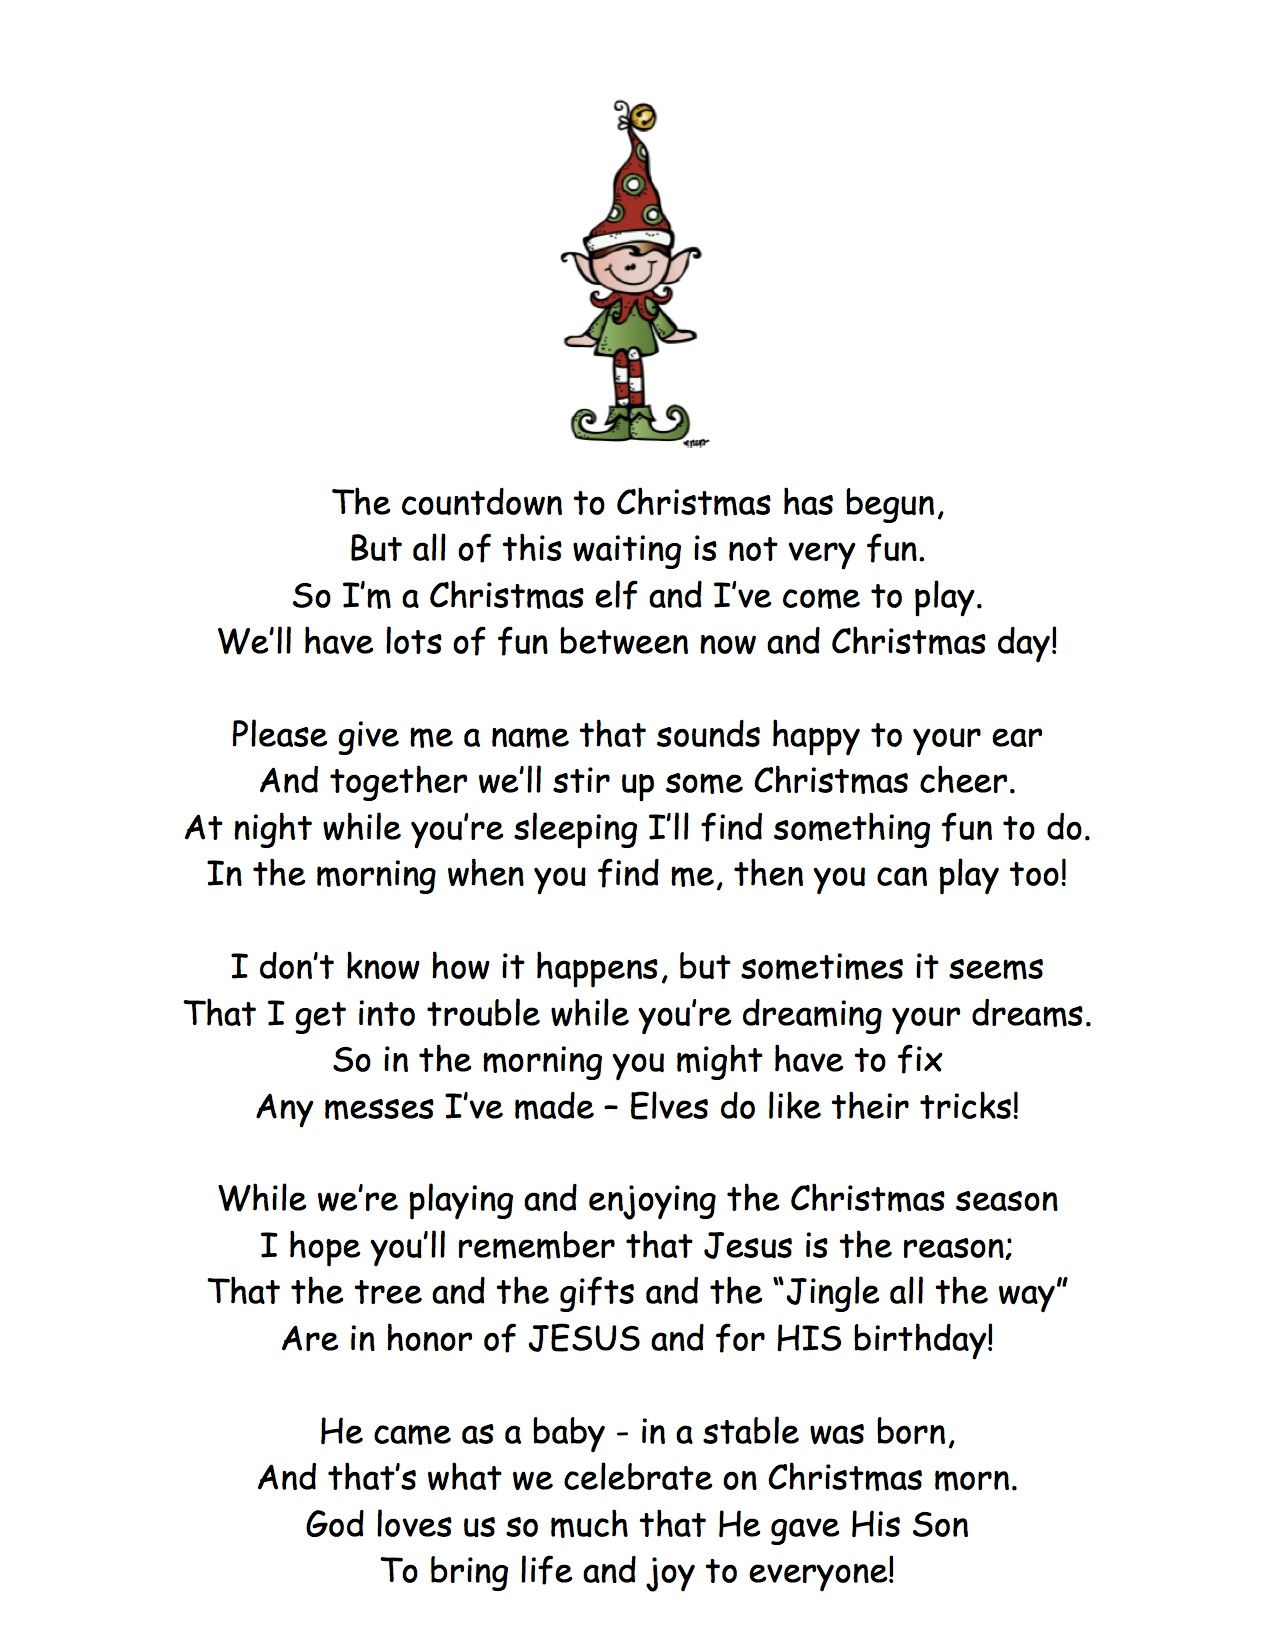 Elf on the Shelf Introduction focuses more on the Christmas Story